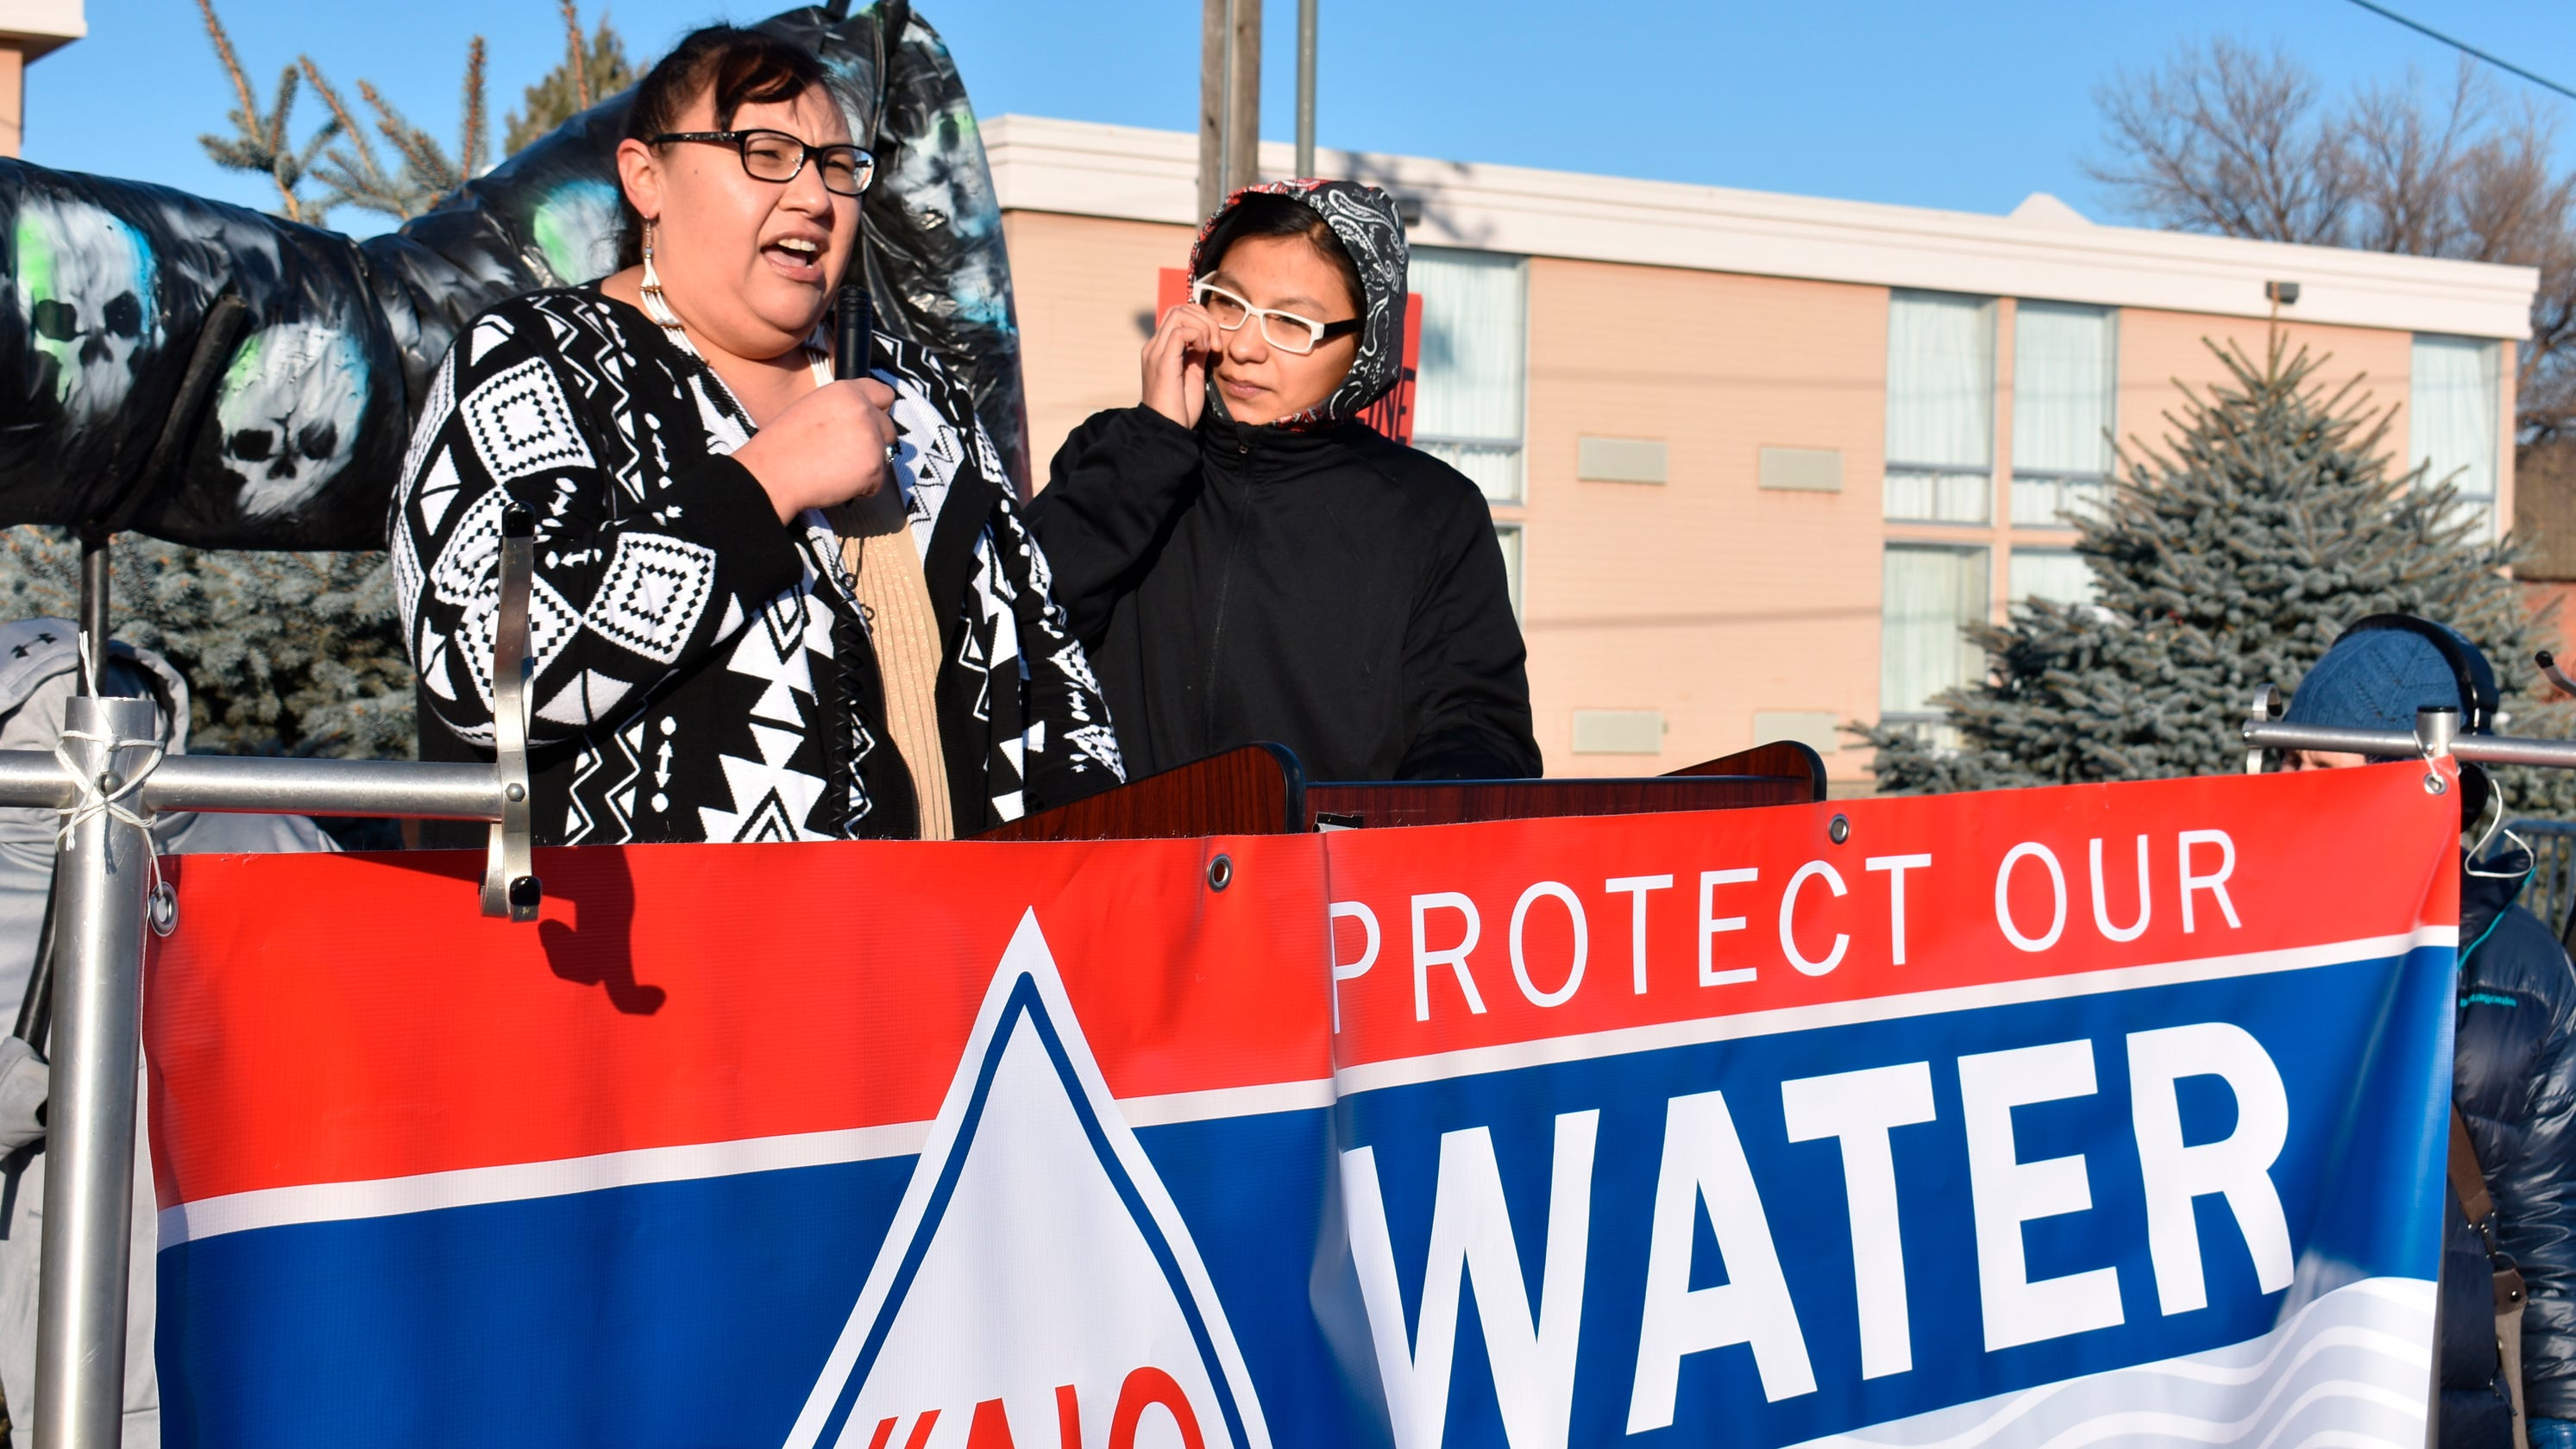 Montana tribal members, fearing water contamination, relieved as Keystone XL pipeline blocked